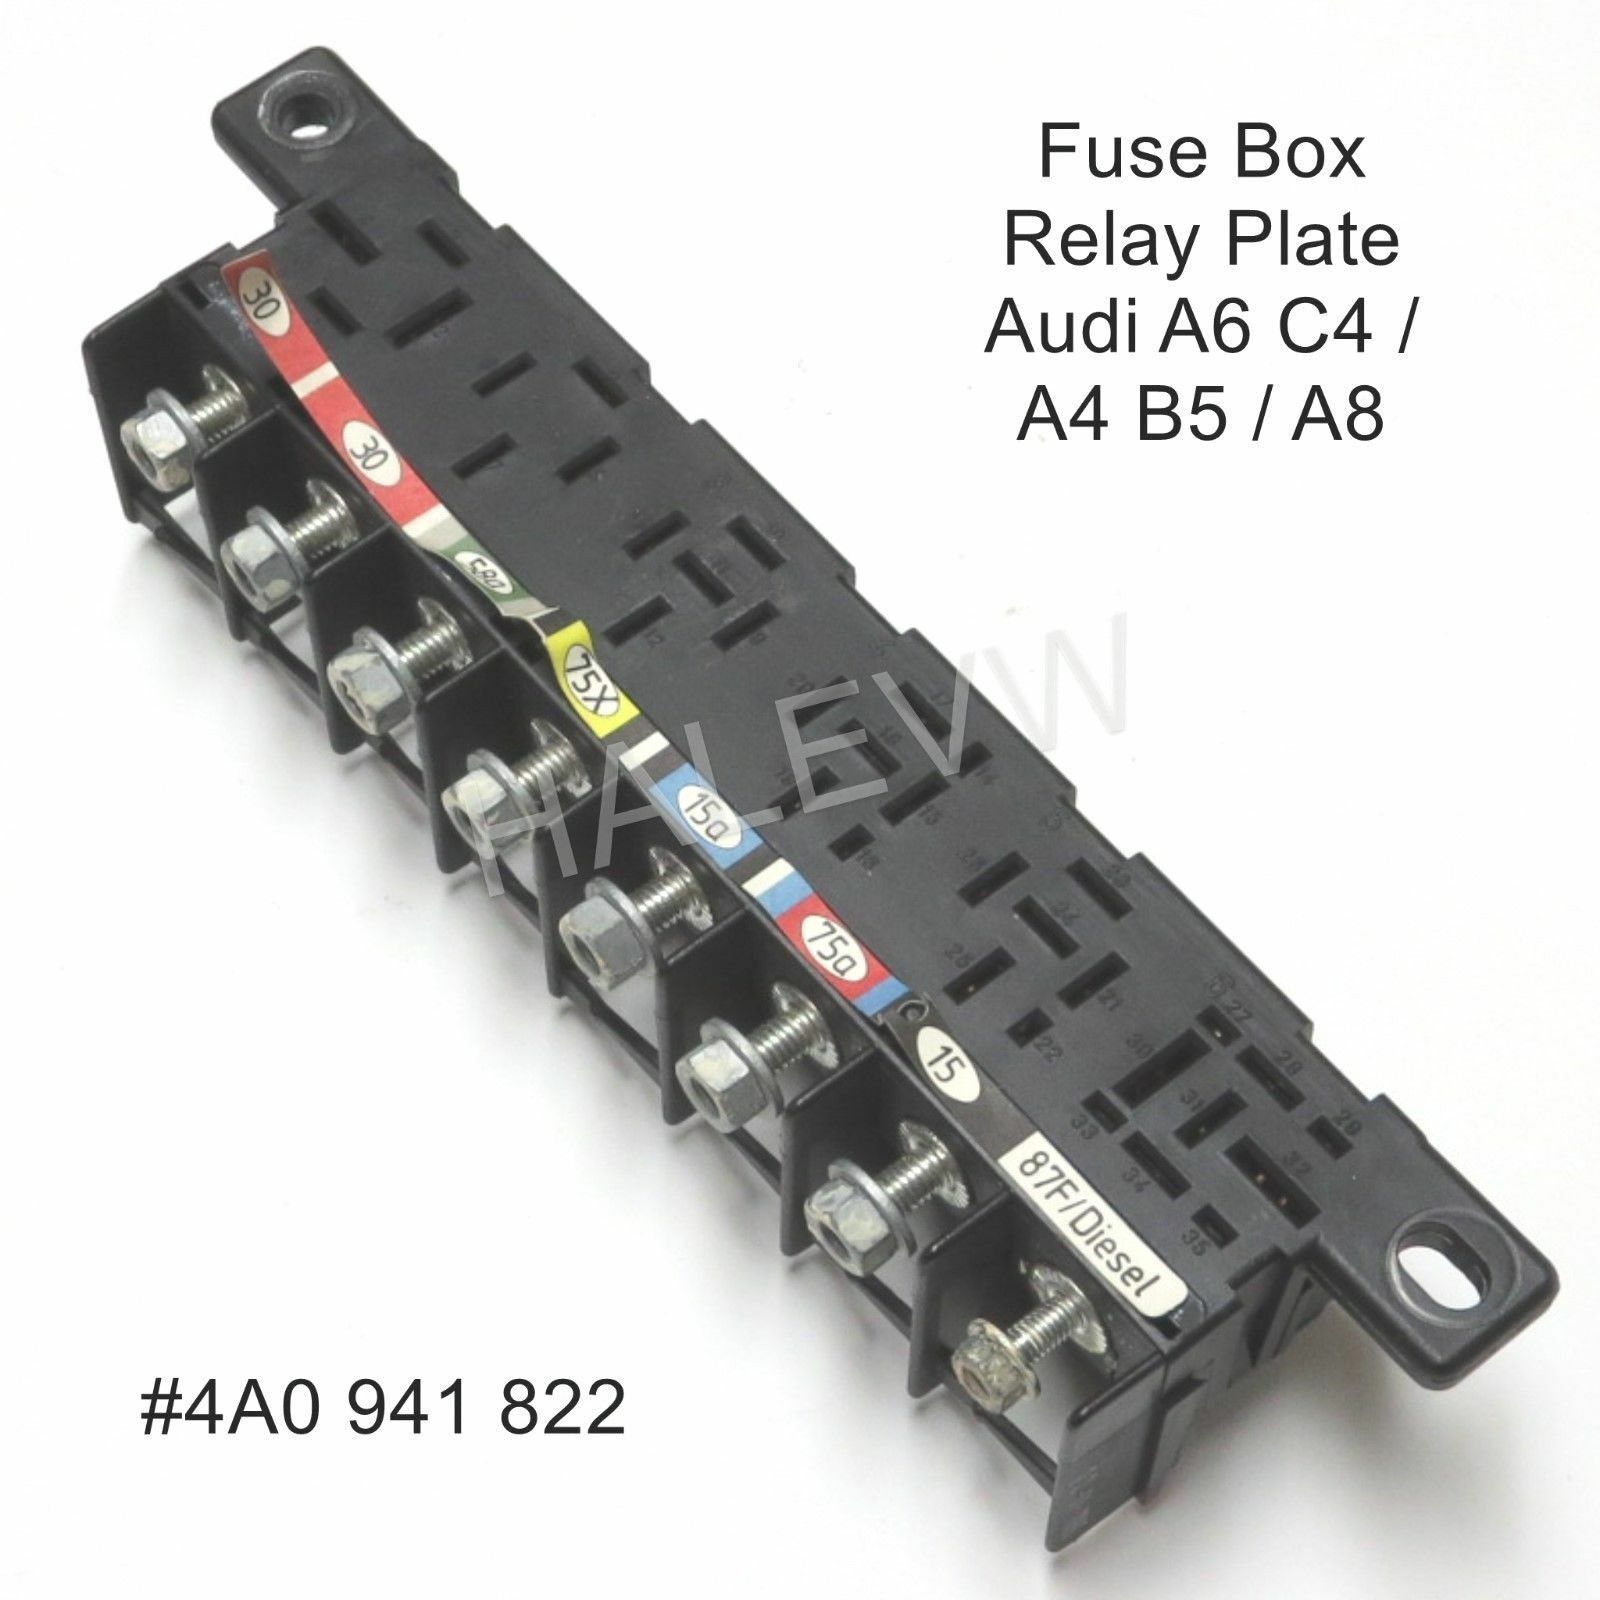 1997 Audi Fuse Box Diagram Trusted Schematics 99 Quattro C4 Experts Of Wiring U2022 2001 A6 Location